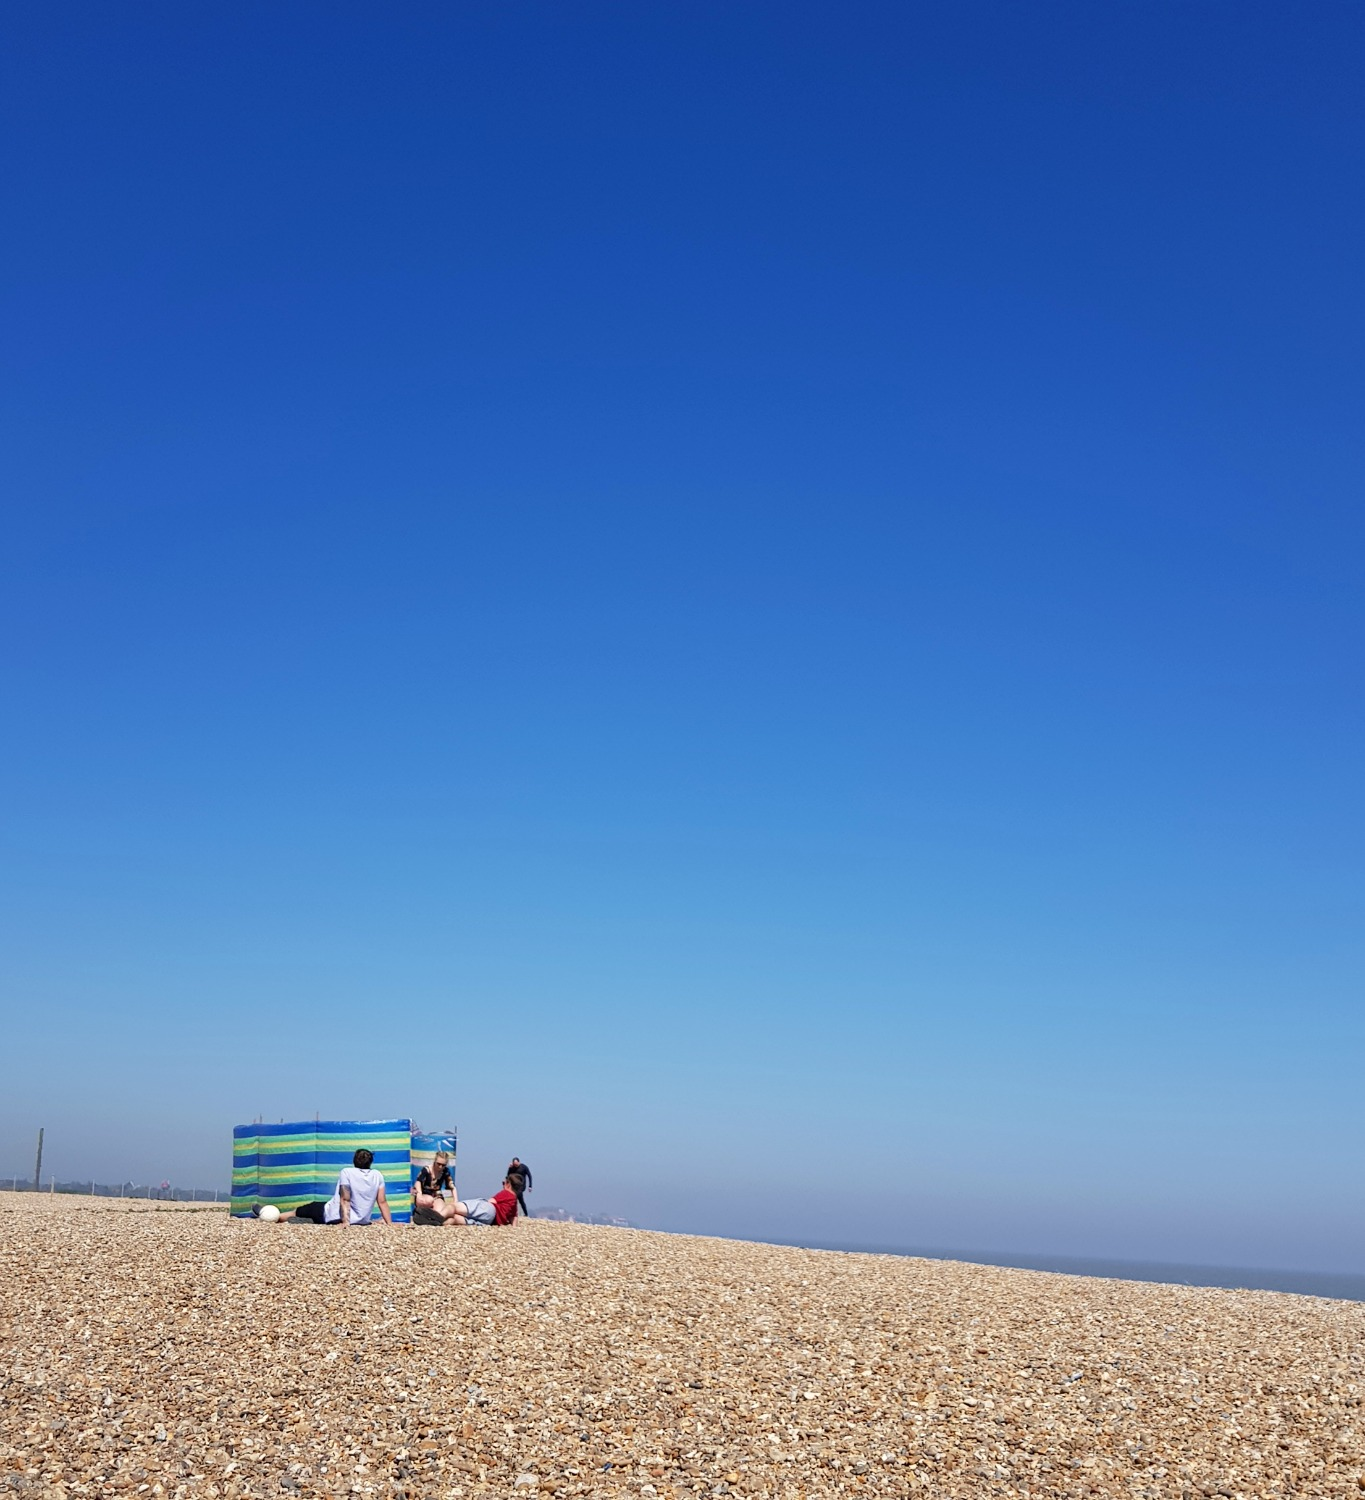 People sitting by a windbreak on the shingle beach at Aldeburgh against a bright blue sky - one of my things to do in Aldeburgh with kids if you're visiting Suffolk